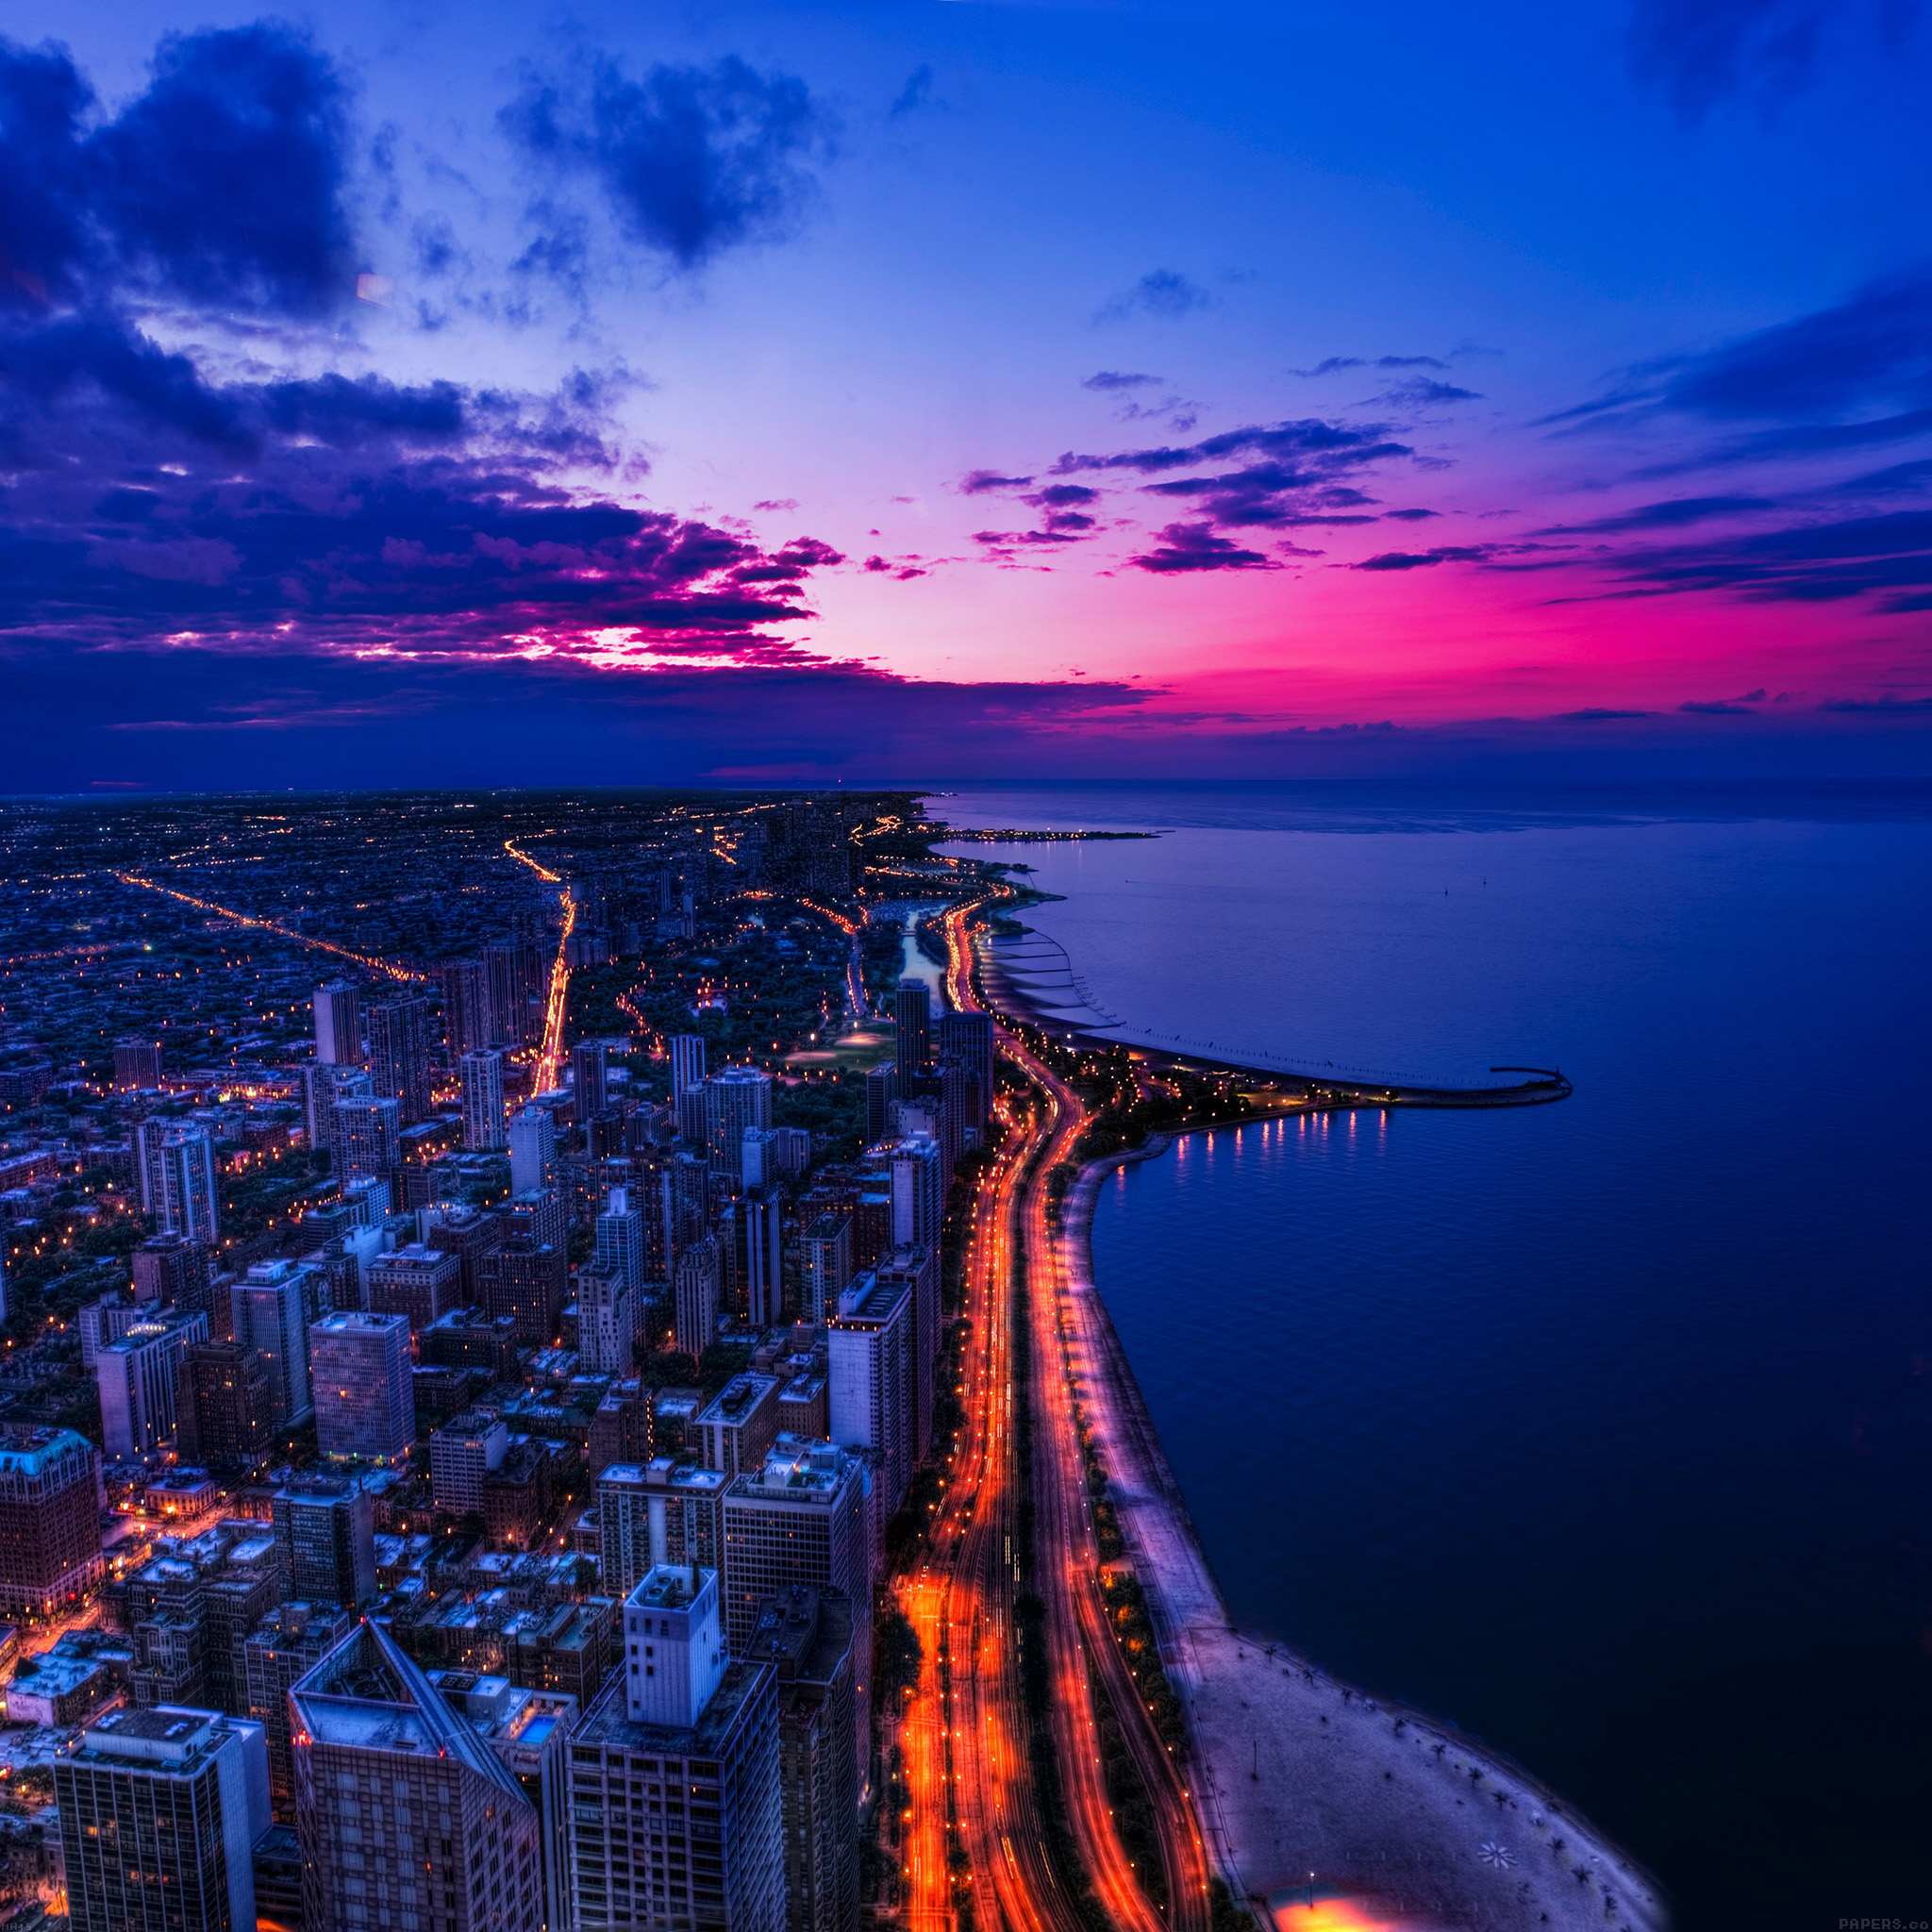 Iphone Wallpaper: Mh45-chicago-city-night-sky-view-scape-ocean-beach